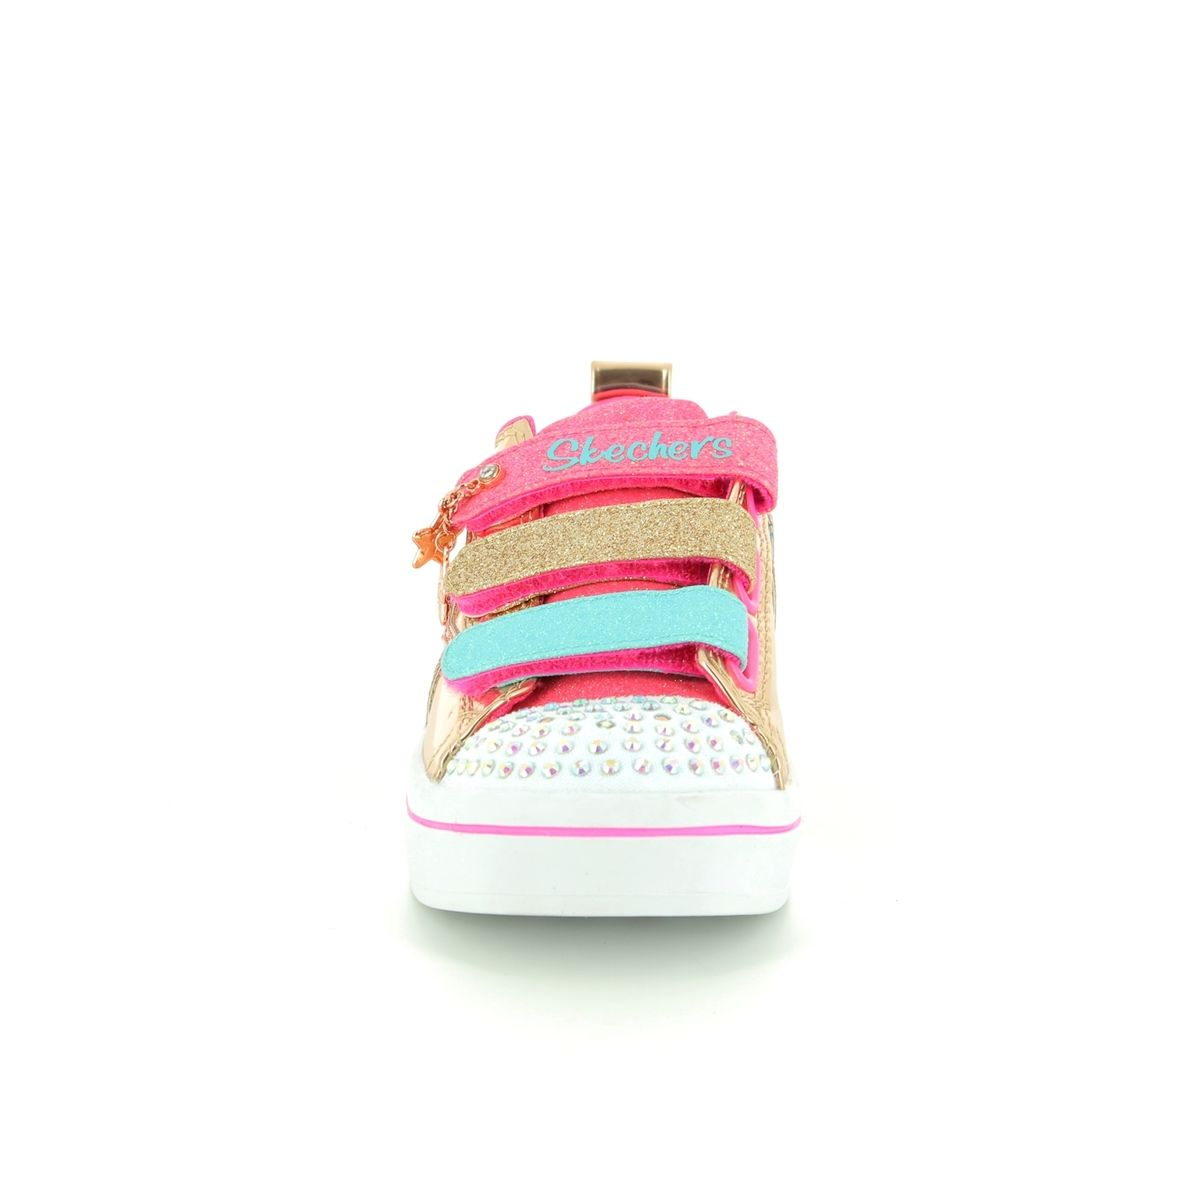 Egg Pram In Rose Gold Skechers Twi Lites 10981 Rsgd Rose Gold Trainers